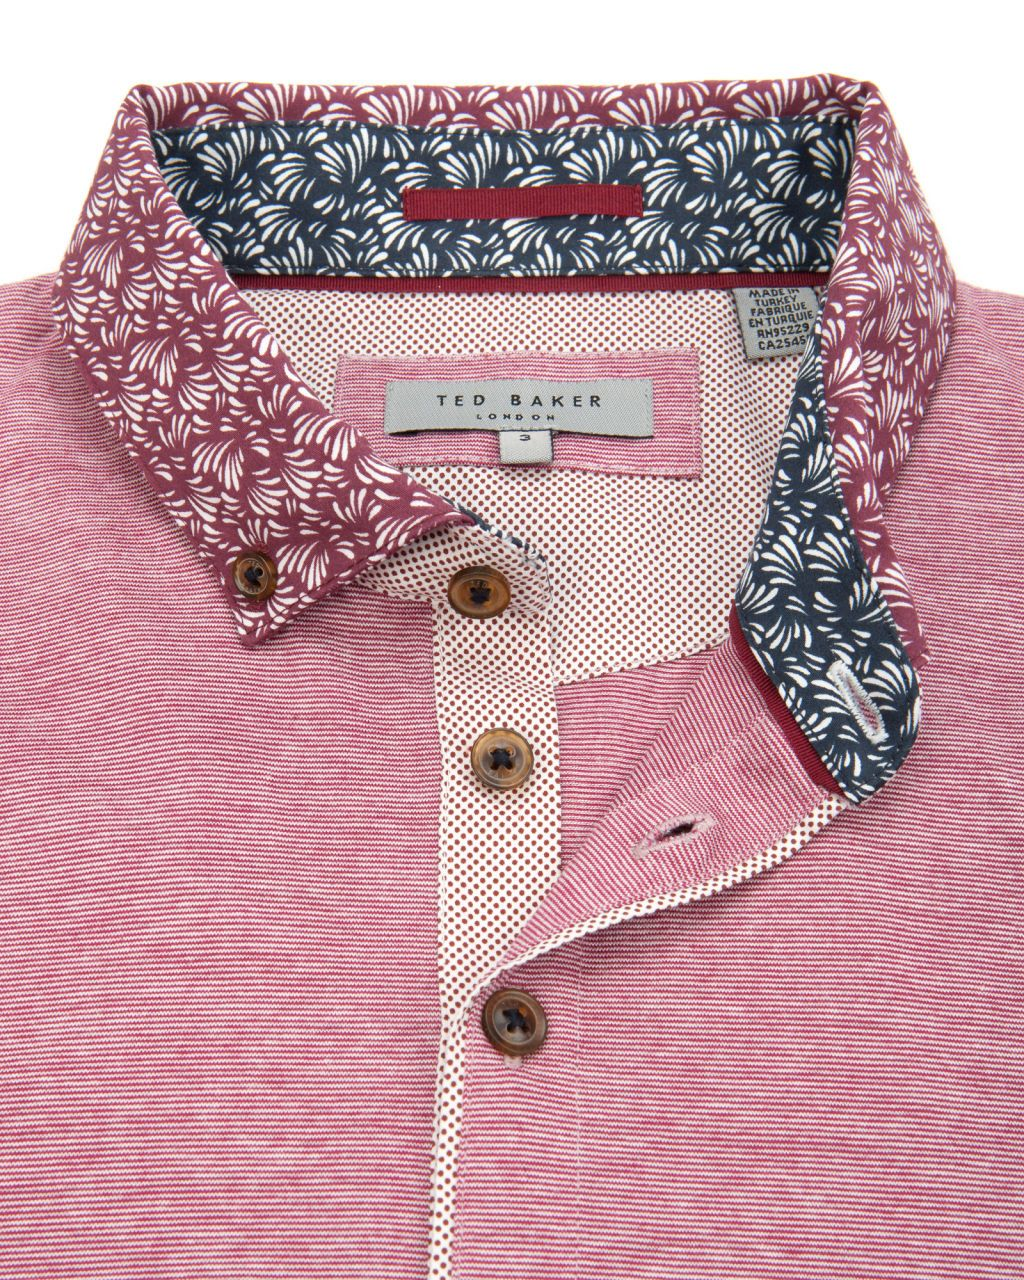 Printed collar polo pink tops u tshirts ted baker row merah